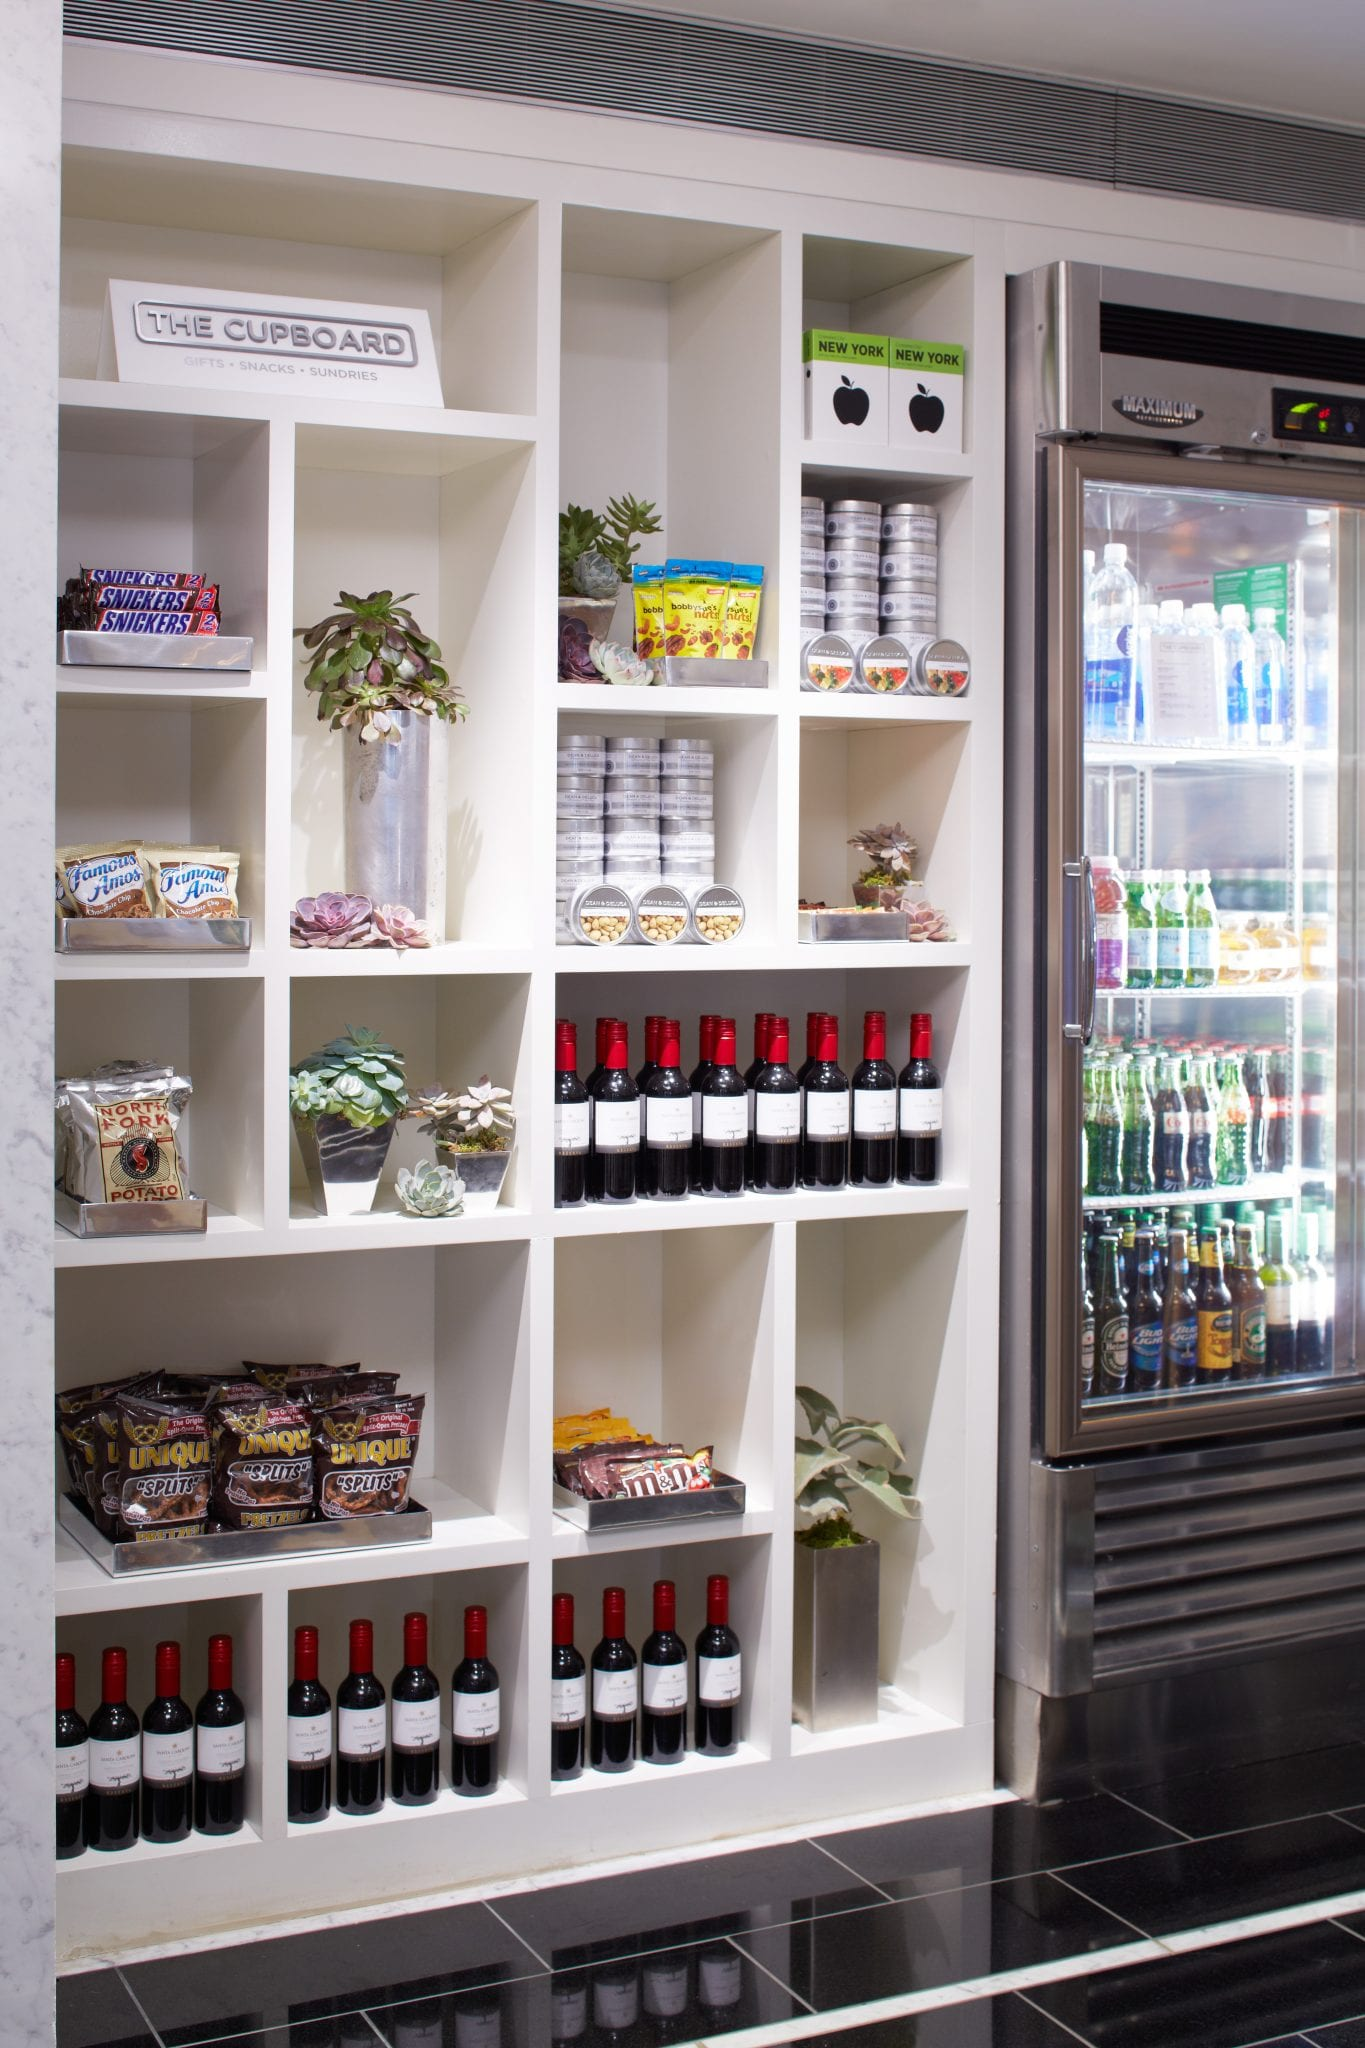 Beverage refridgerator and shelves along the wall of The Cupboard of Affinia 50. Cookies and mixed nut snacks are well stocked along each shelf. A series of small wine bottles are placed on the bottom shelves, with another set on a middle shelf.